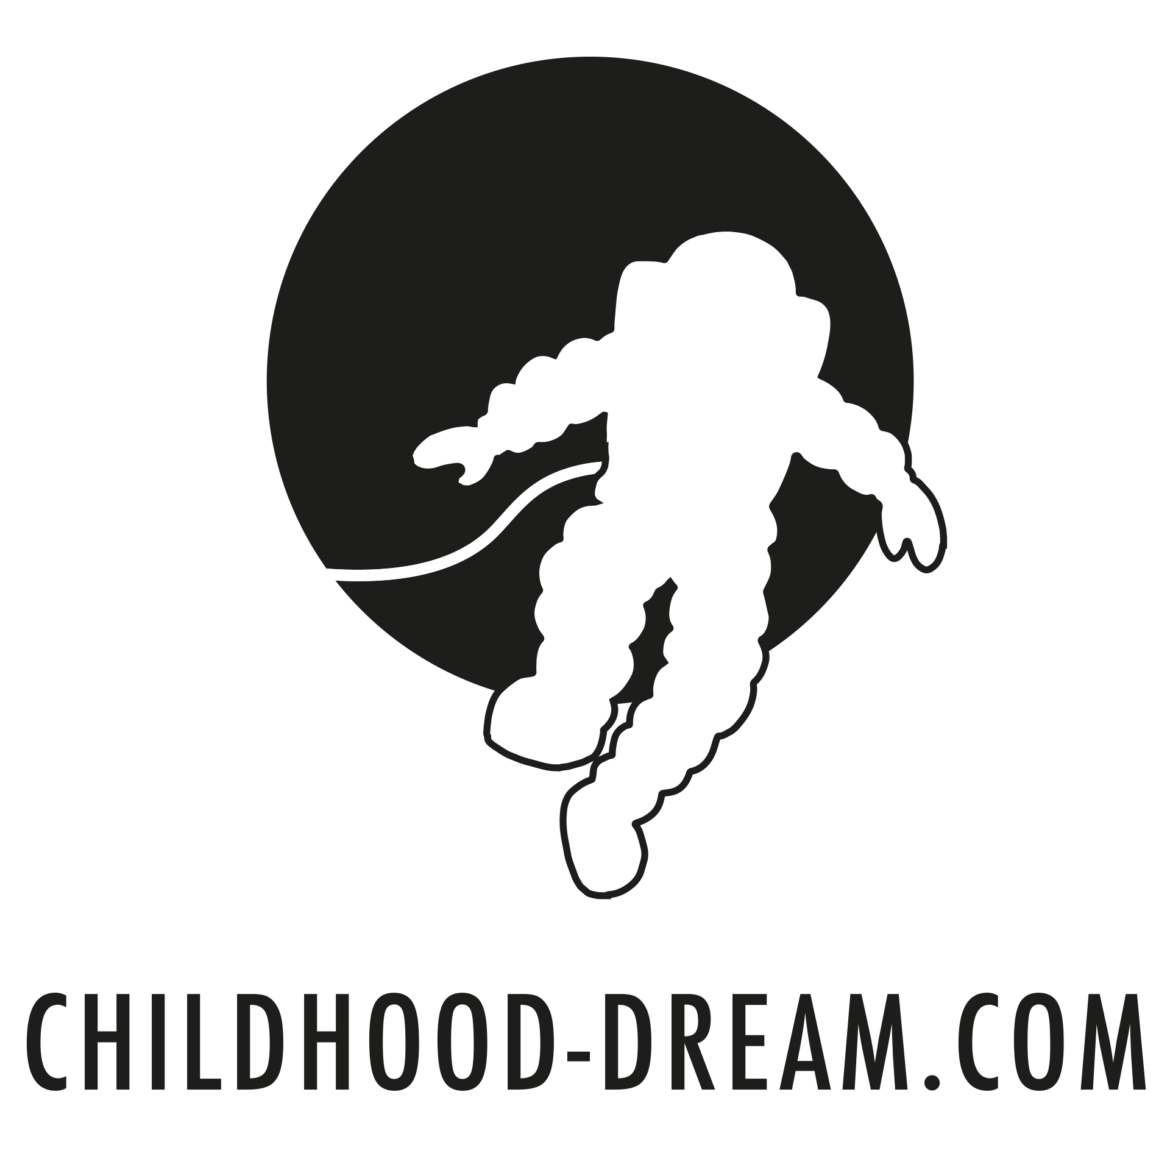 Childhood dream logo, video game studio, indiegame